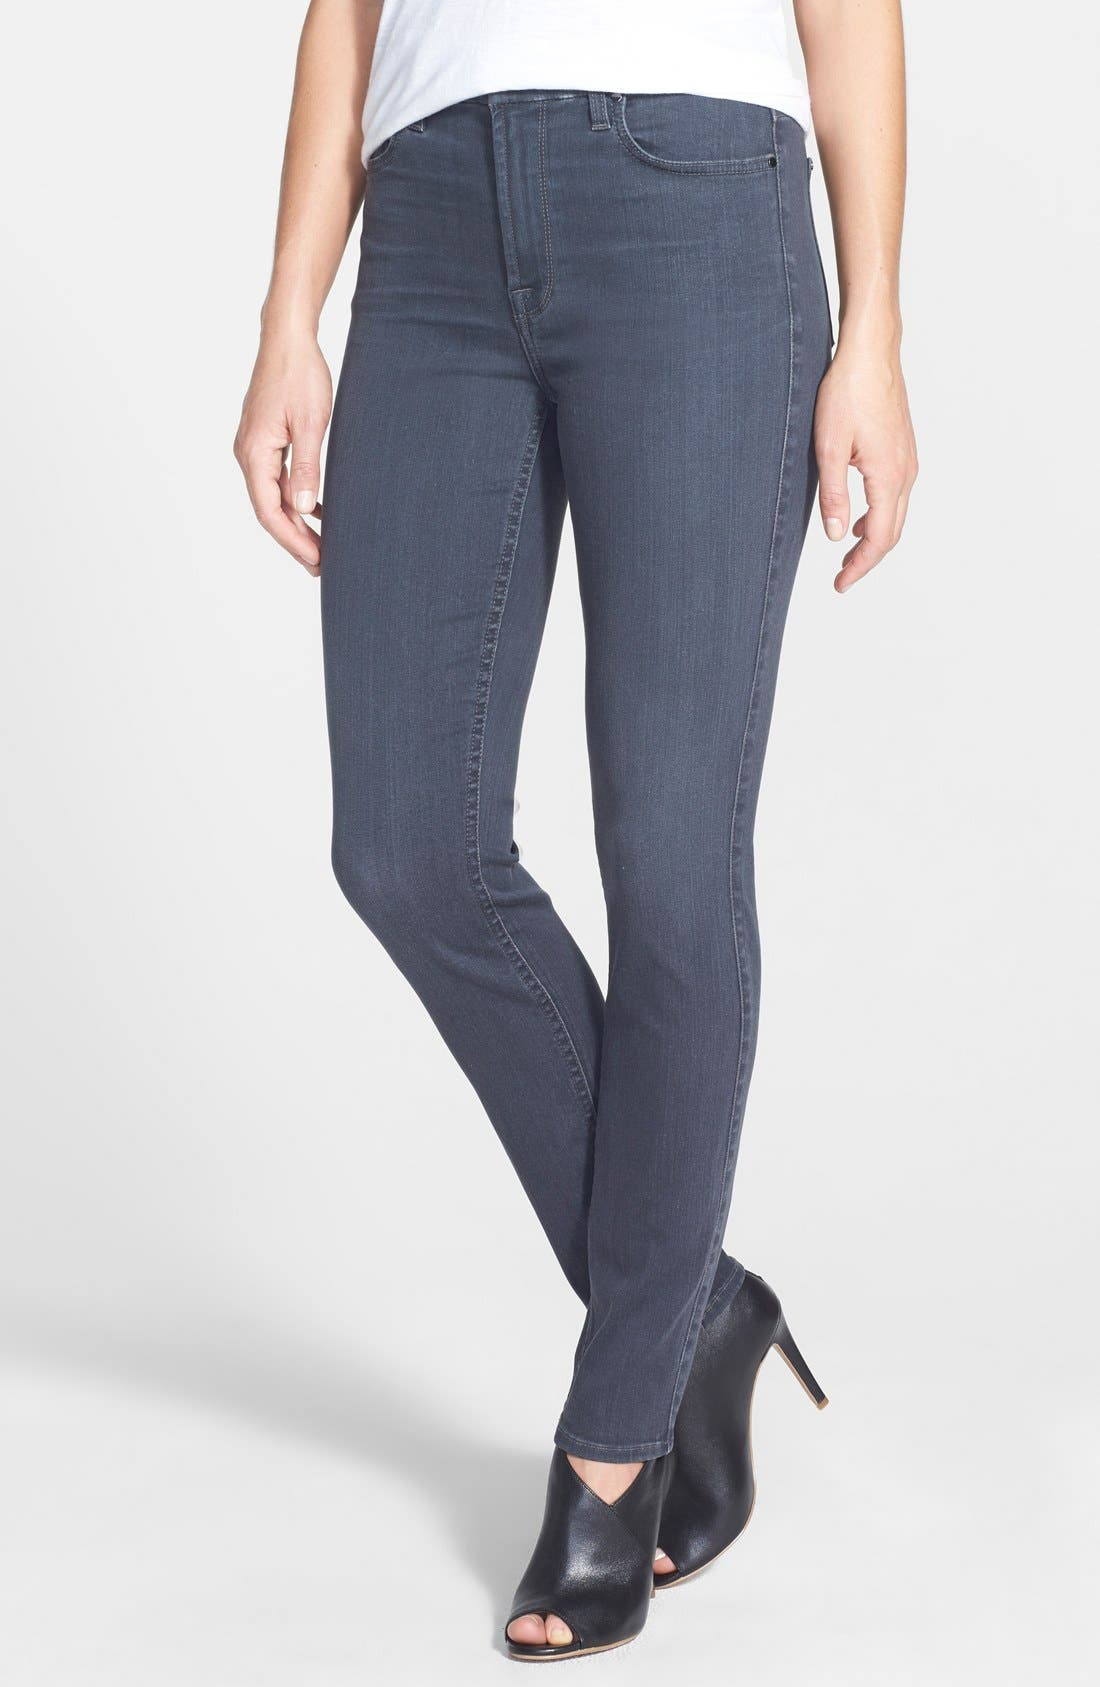 Alternate Image 1 Selected - Jen7 Stretch Skinny Jeans (Clean Grey)